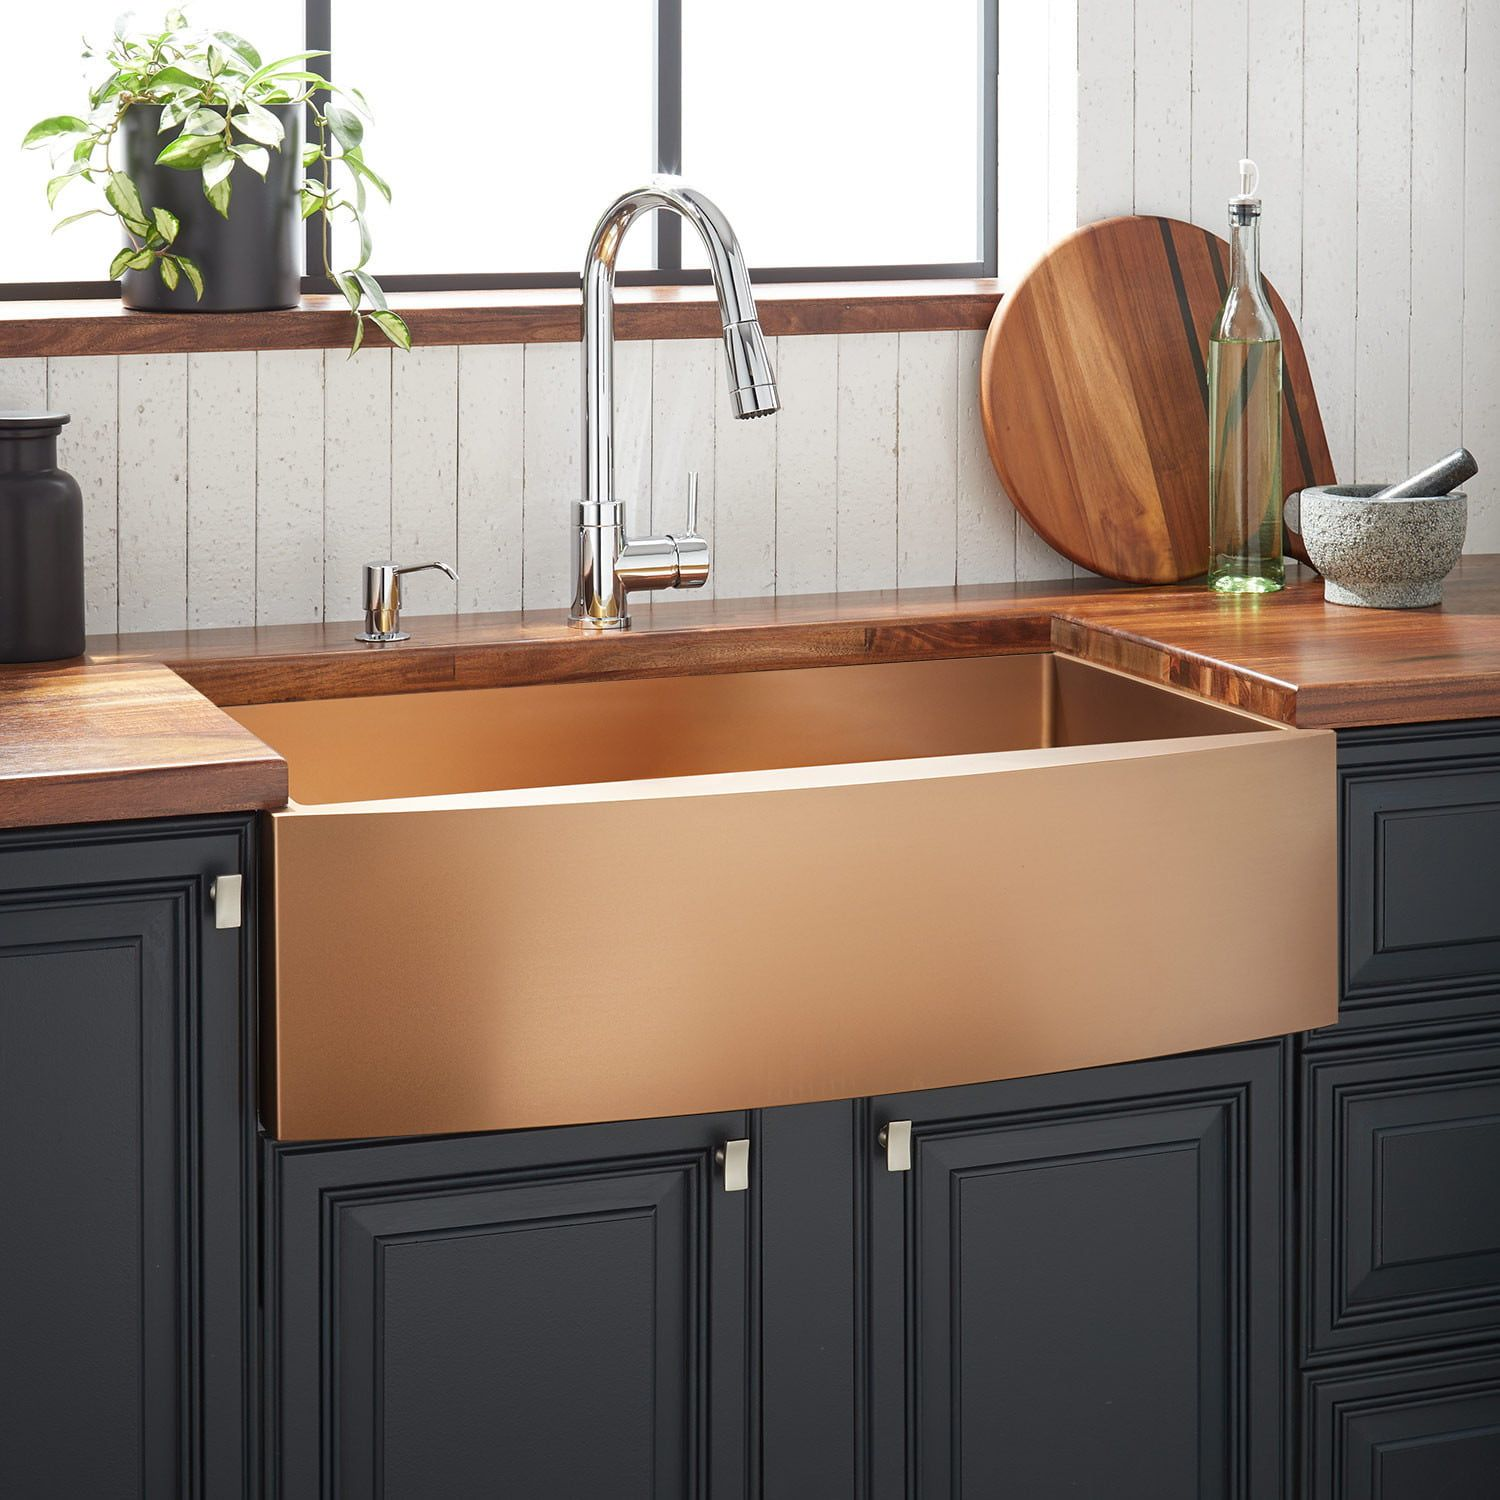 30 Atlas Stainless Steel Farmhouse Sink In Curved Apron In Gunmetal Black Sign Stainless Steel Farmhouse Sink Farmhouse Sink Kitchen Sinks Kitchen Stainless